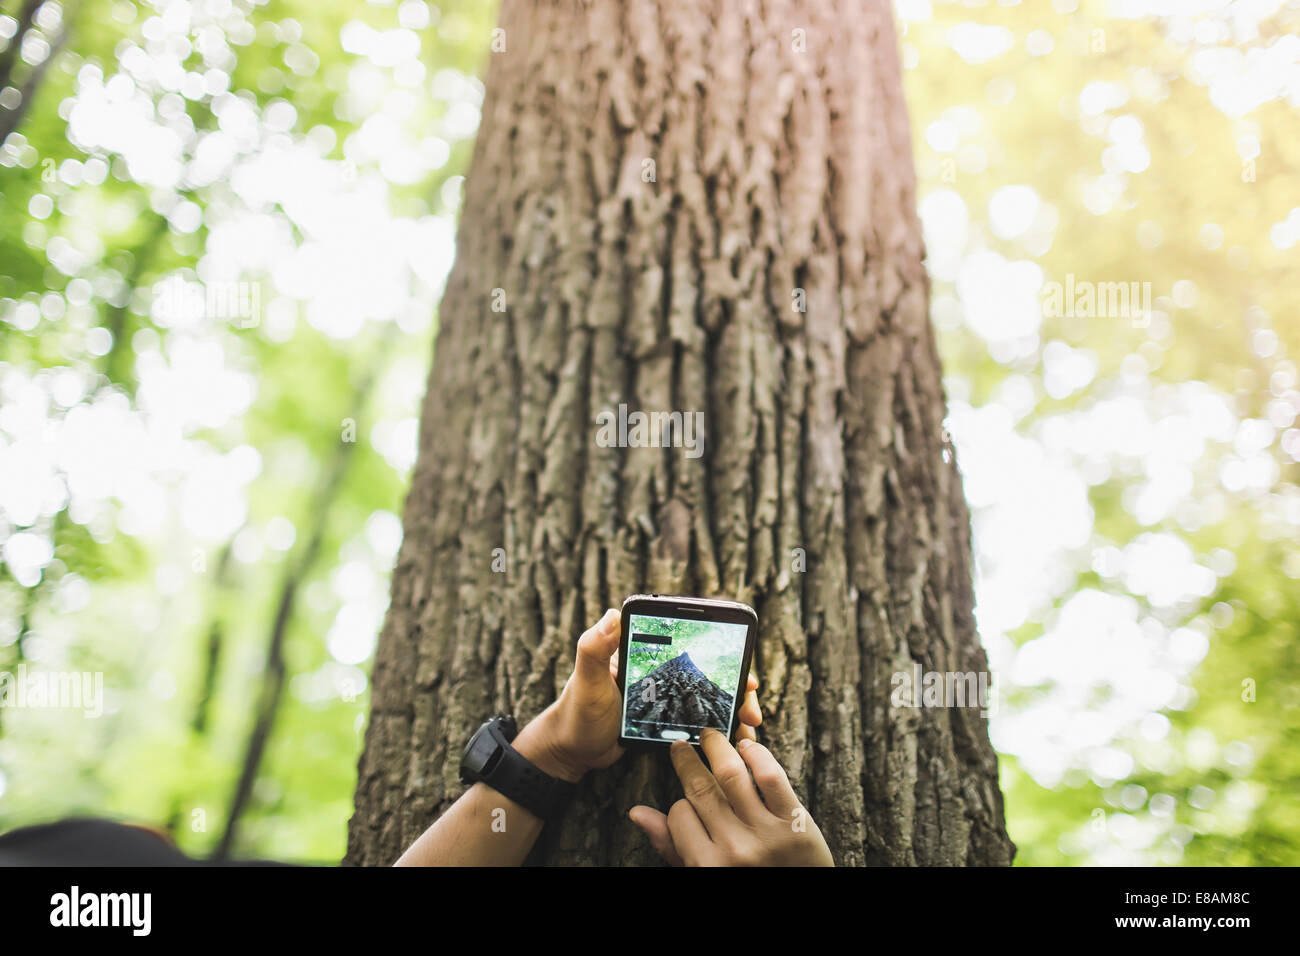 Person taking photo of tree trunk with camera phone - Stock Image